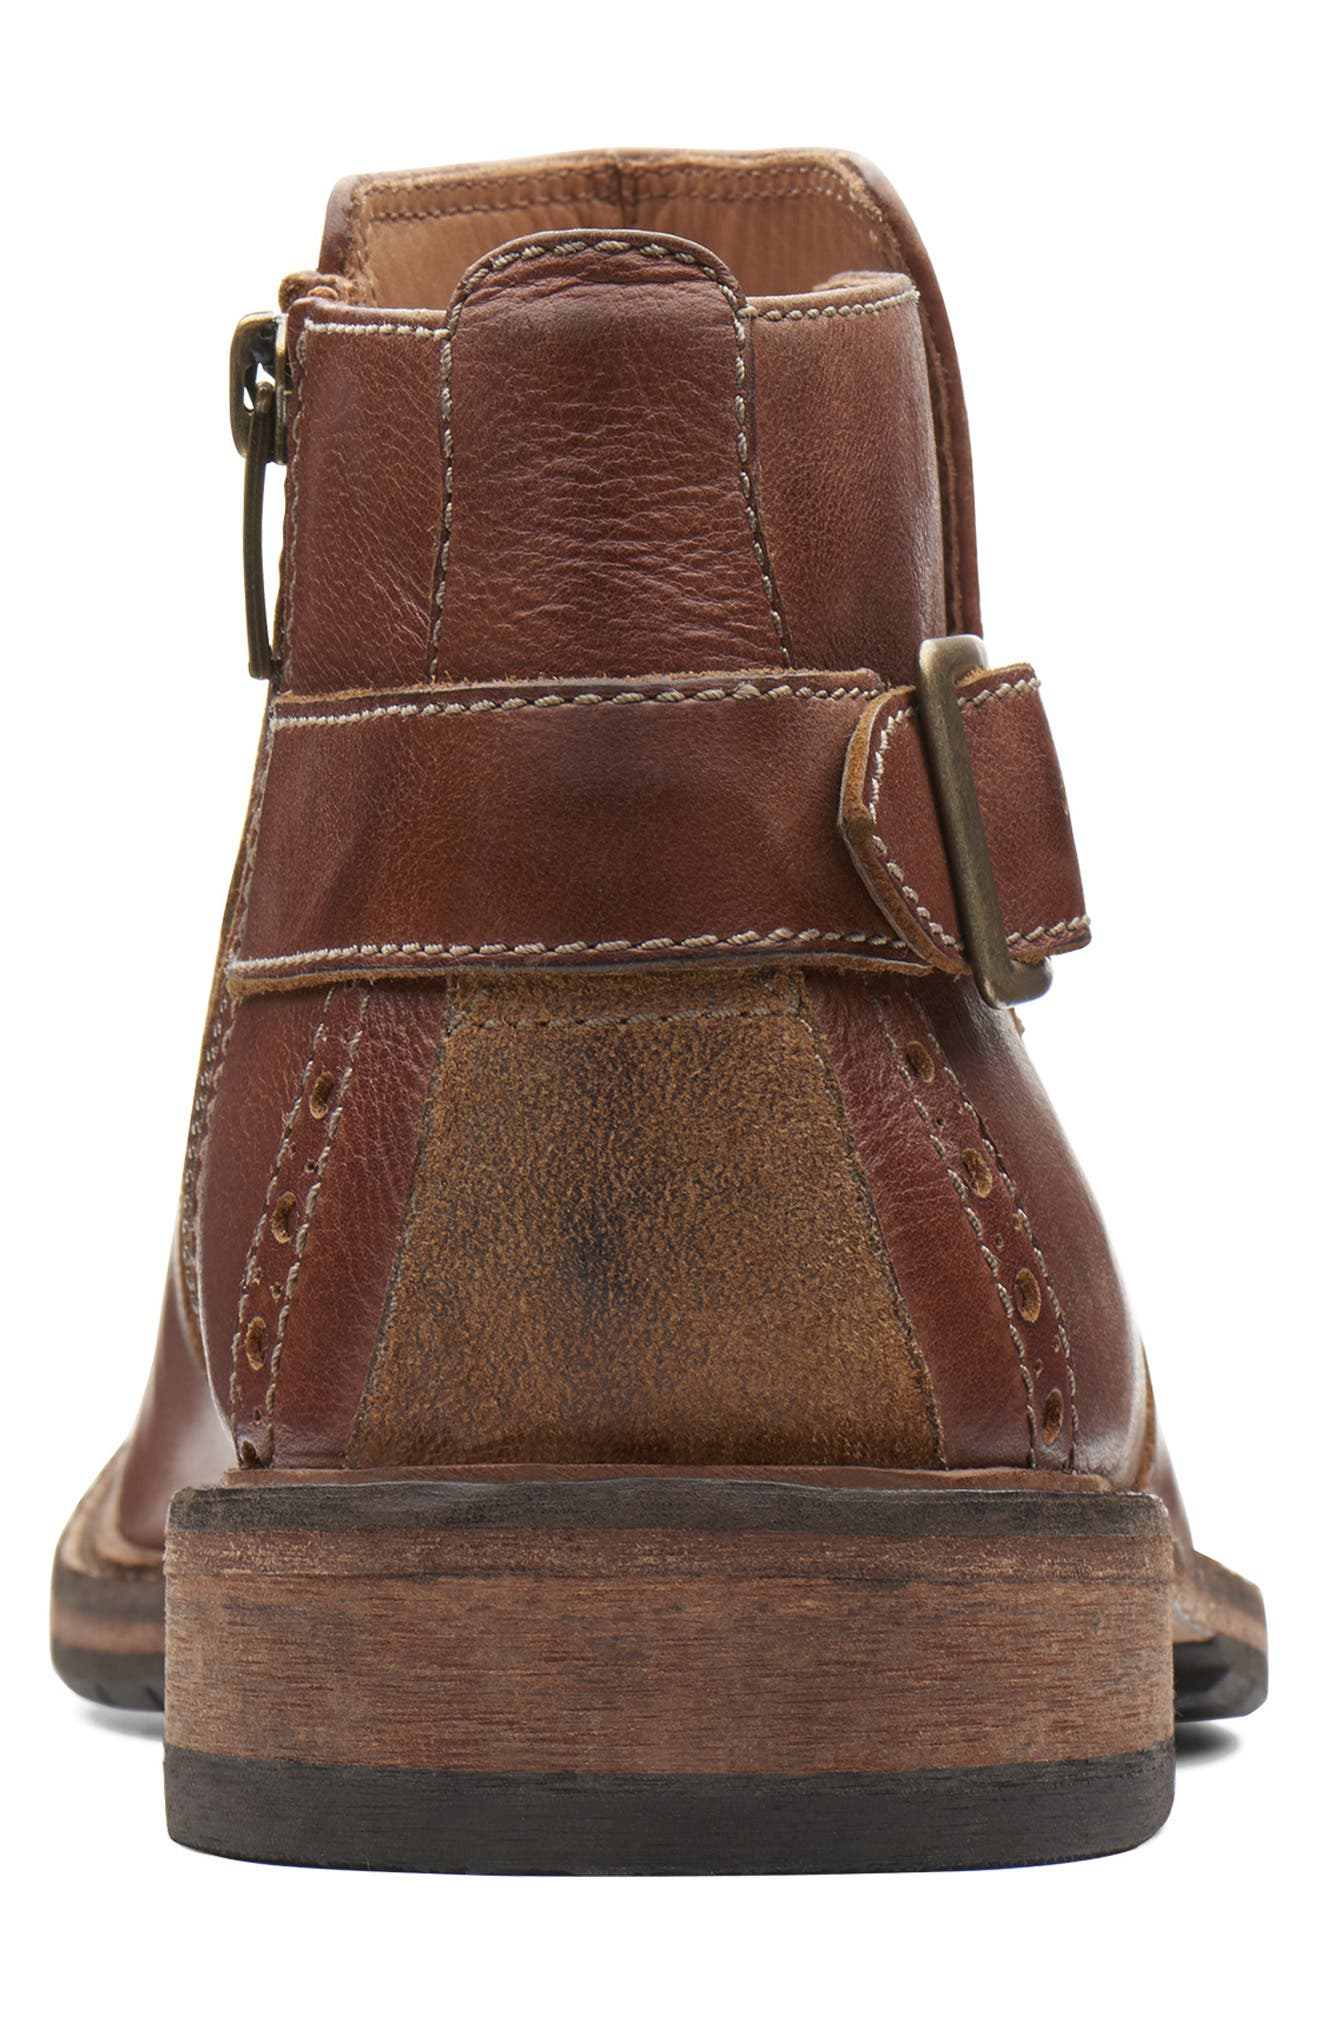 Clarkdale Remi Ankle Boot,                             Alternate thumbnail 4, color,                             DARK TAN LEATHER